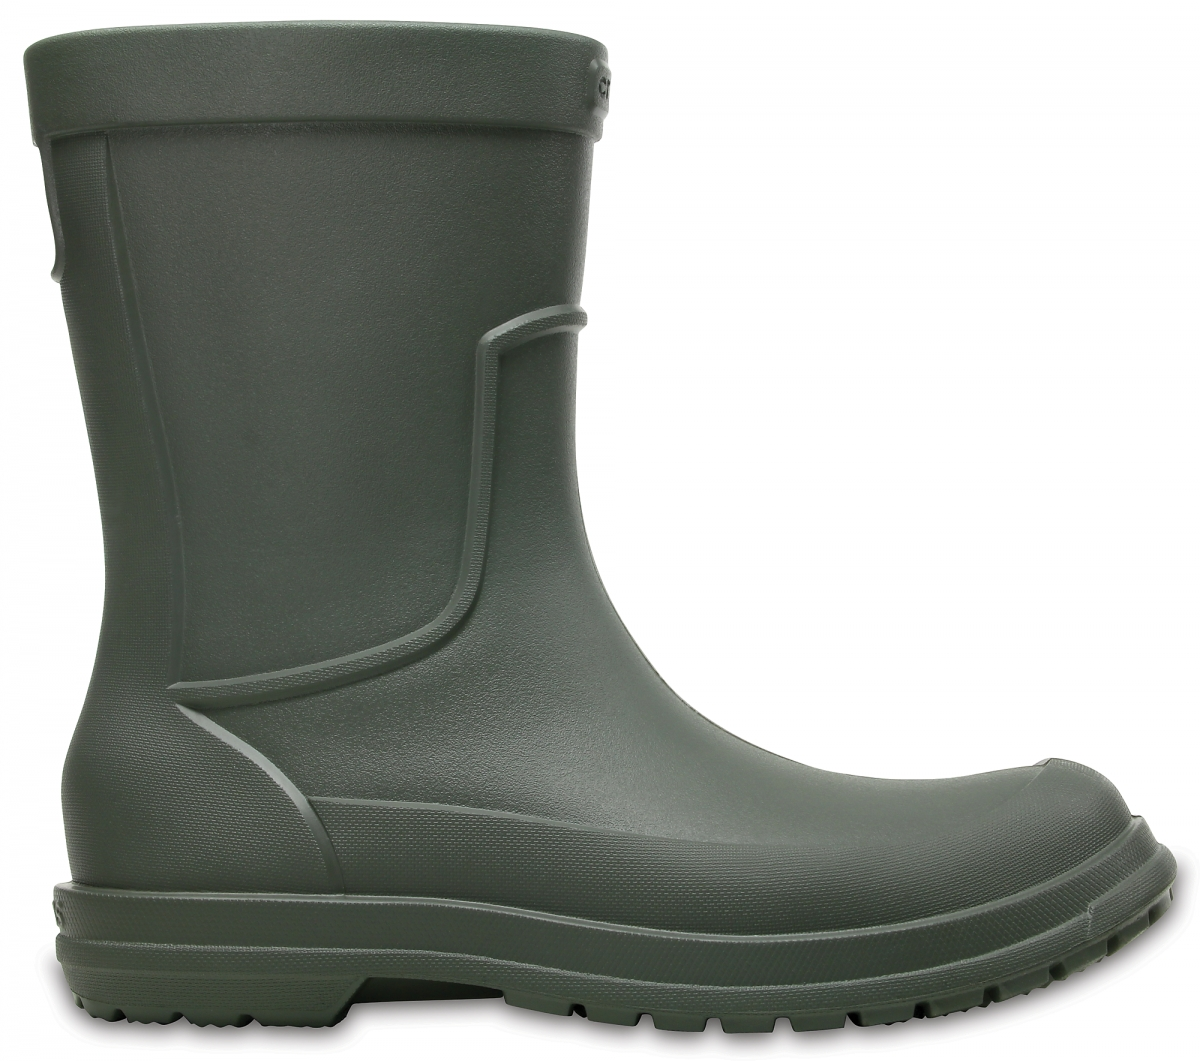 Crocs AllCast Rain Boot Men - Dusty Olive, M12 (46-47)